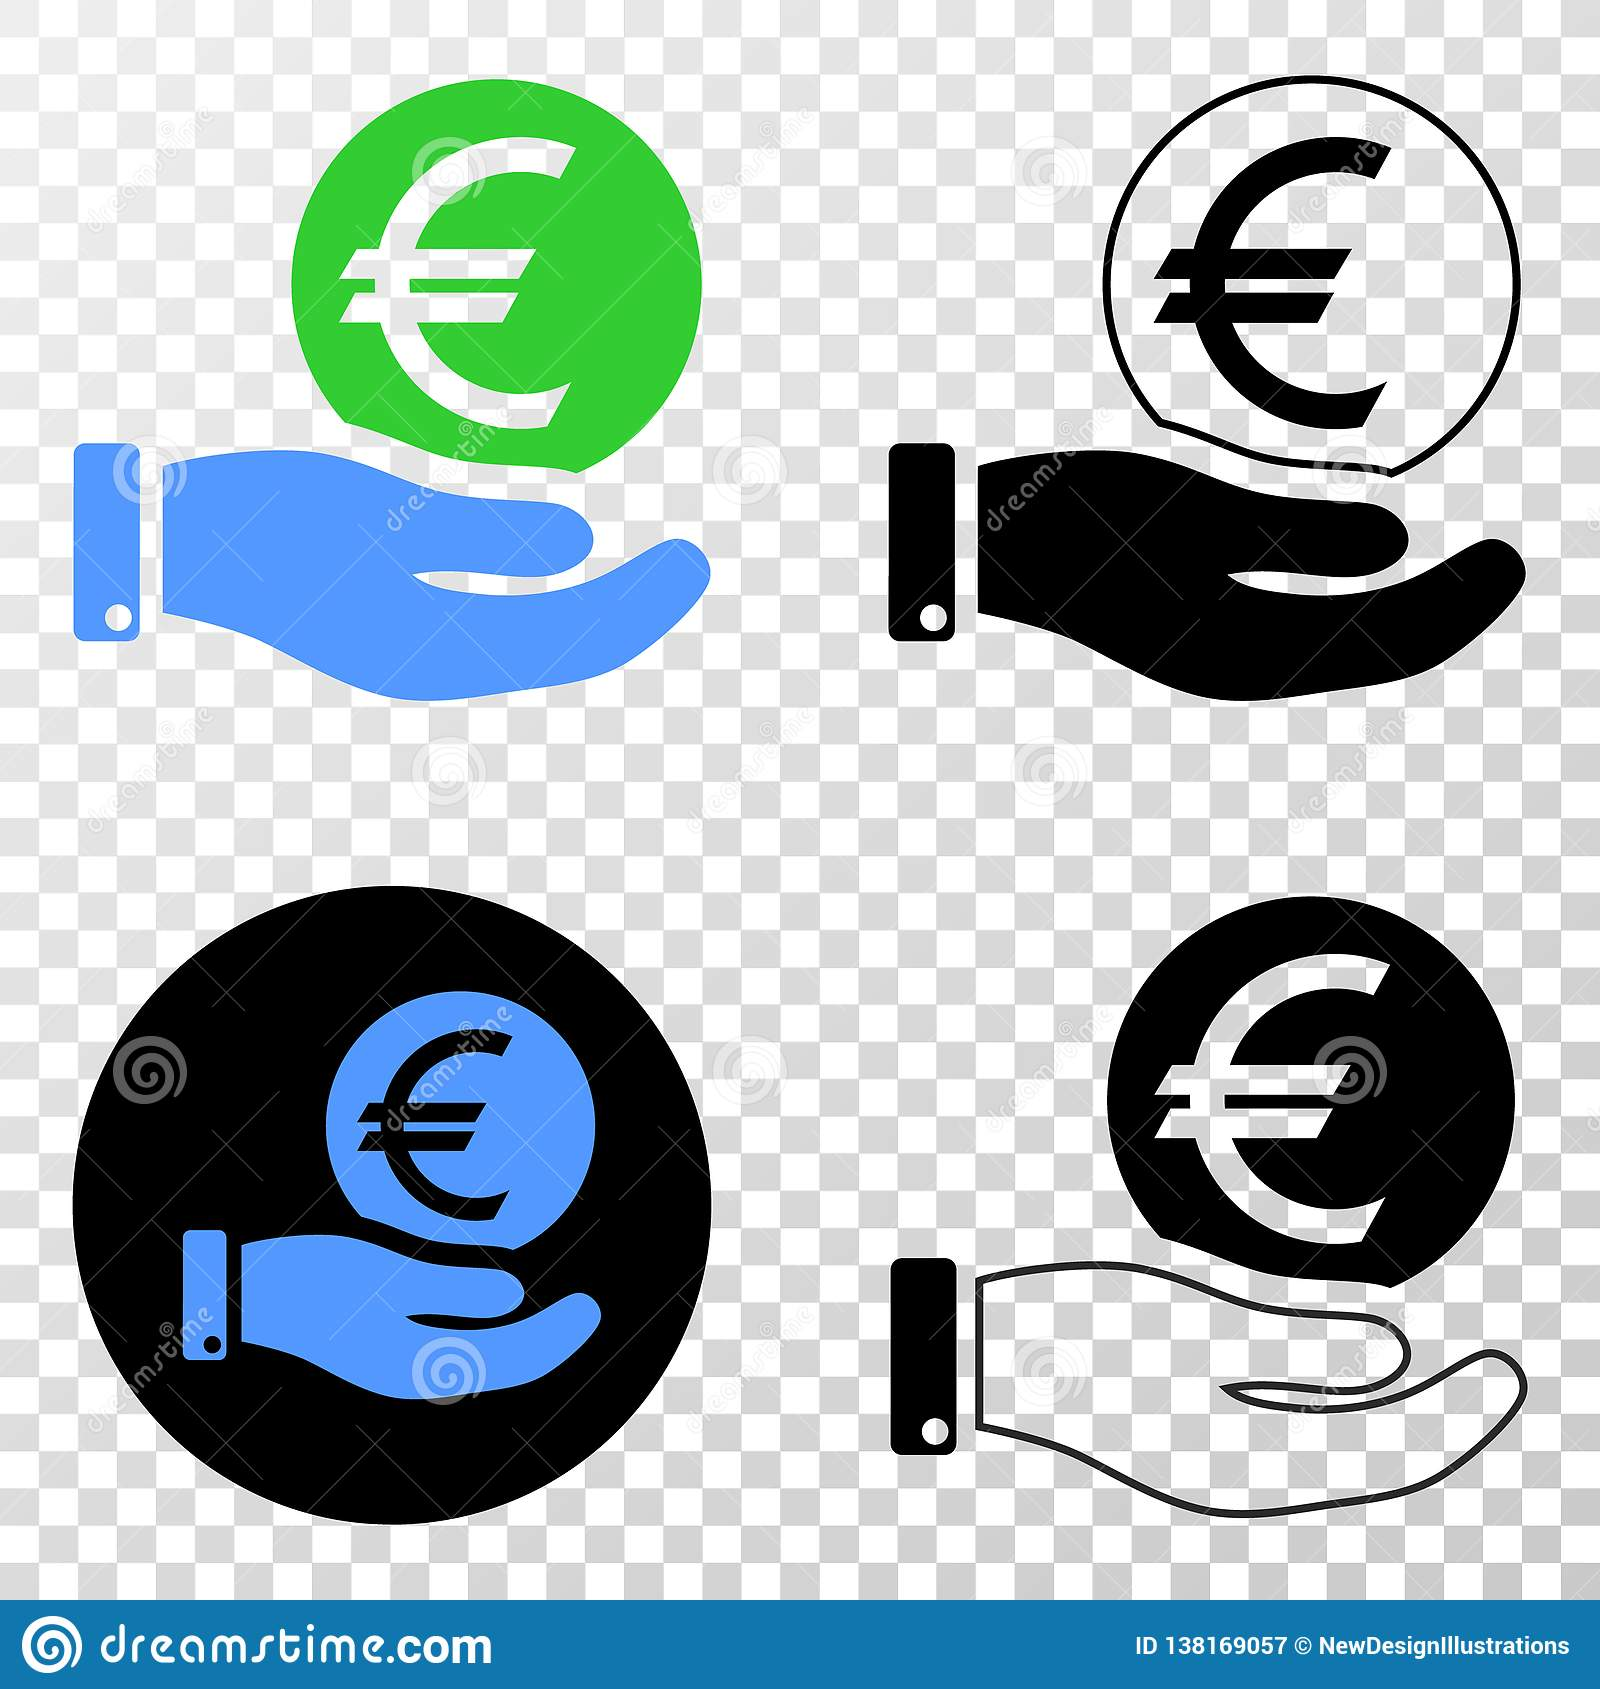 Hand Offer Euro Coin Vector EPS Icon With Contour Version Stock Vector -  Illustration of sticker, business: 138169057